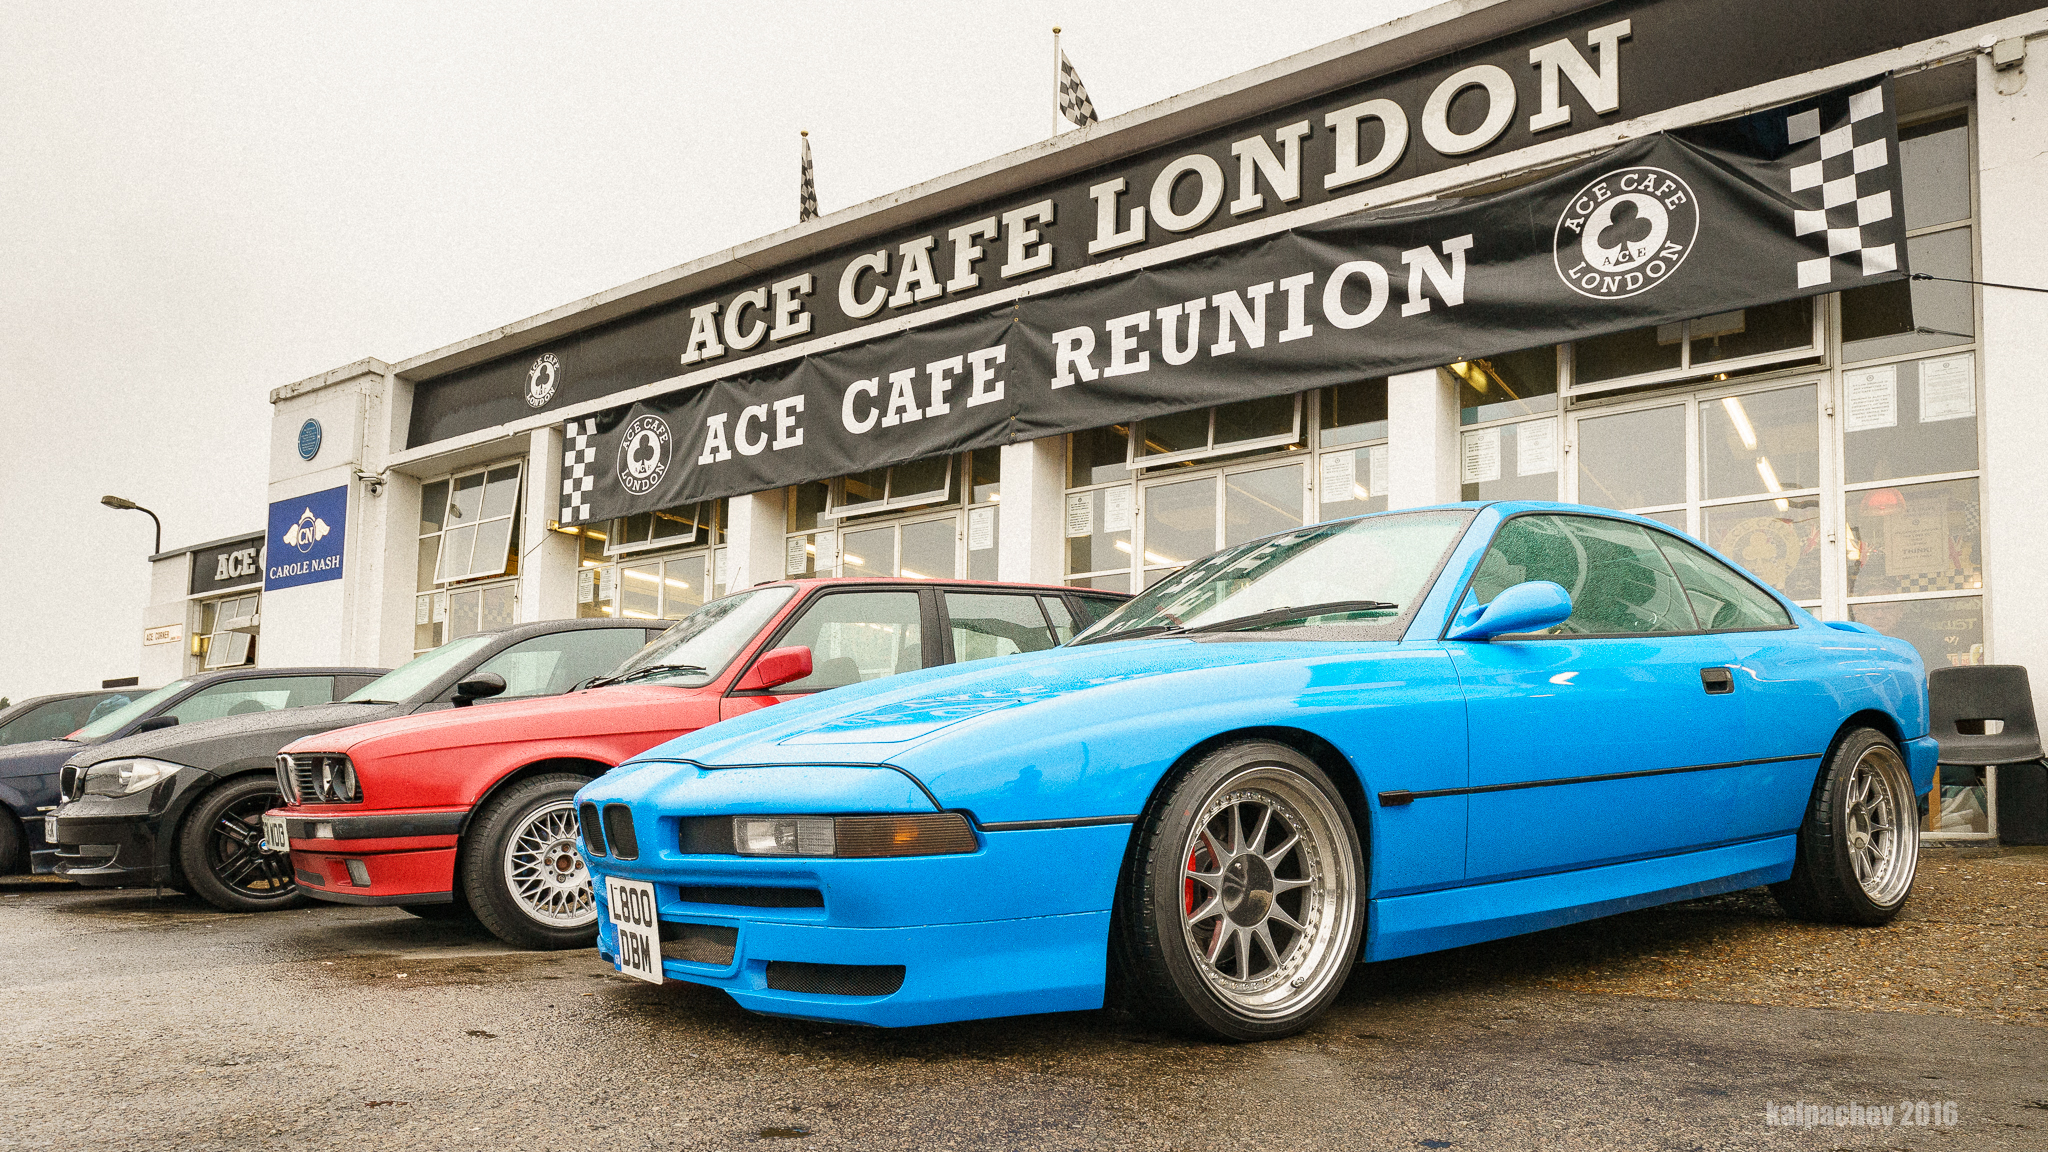 Ace Cafe London – German night @acecafelondon